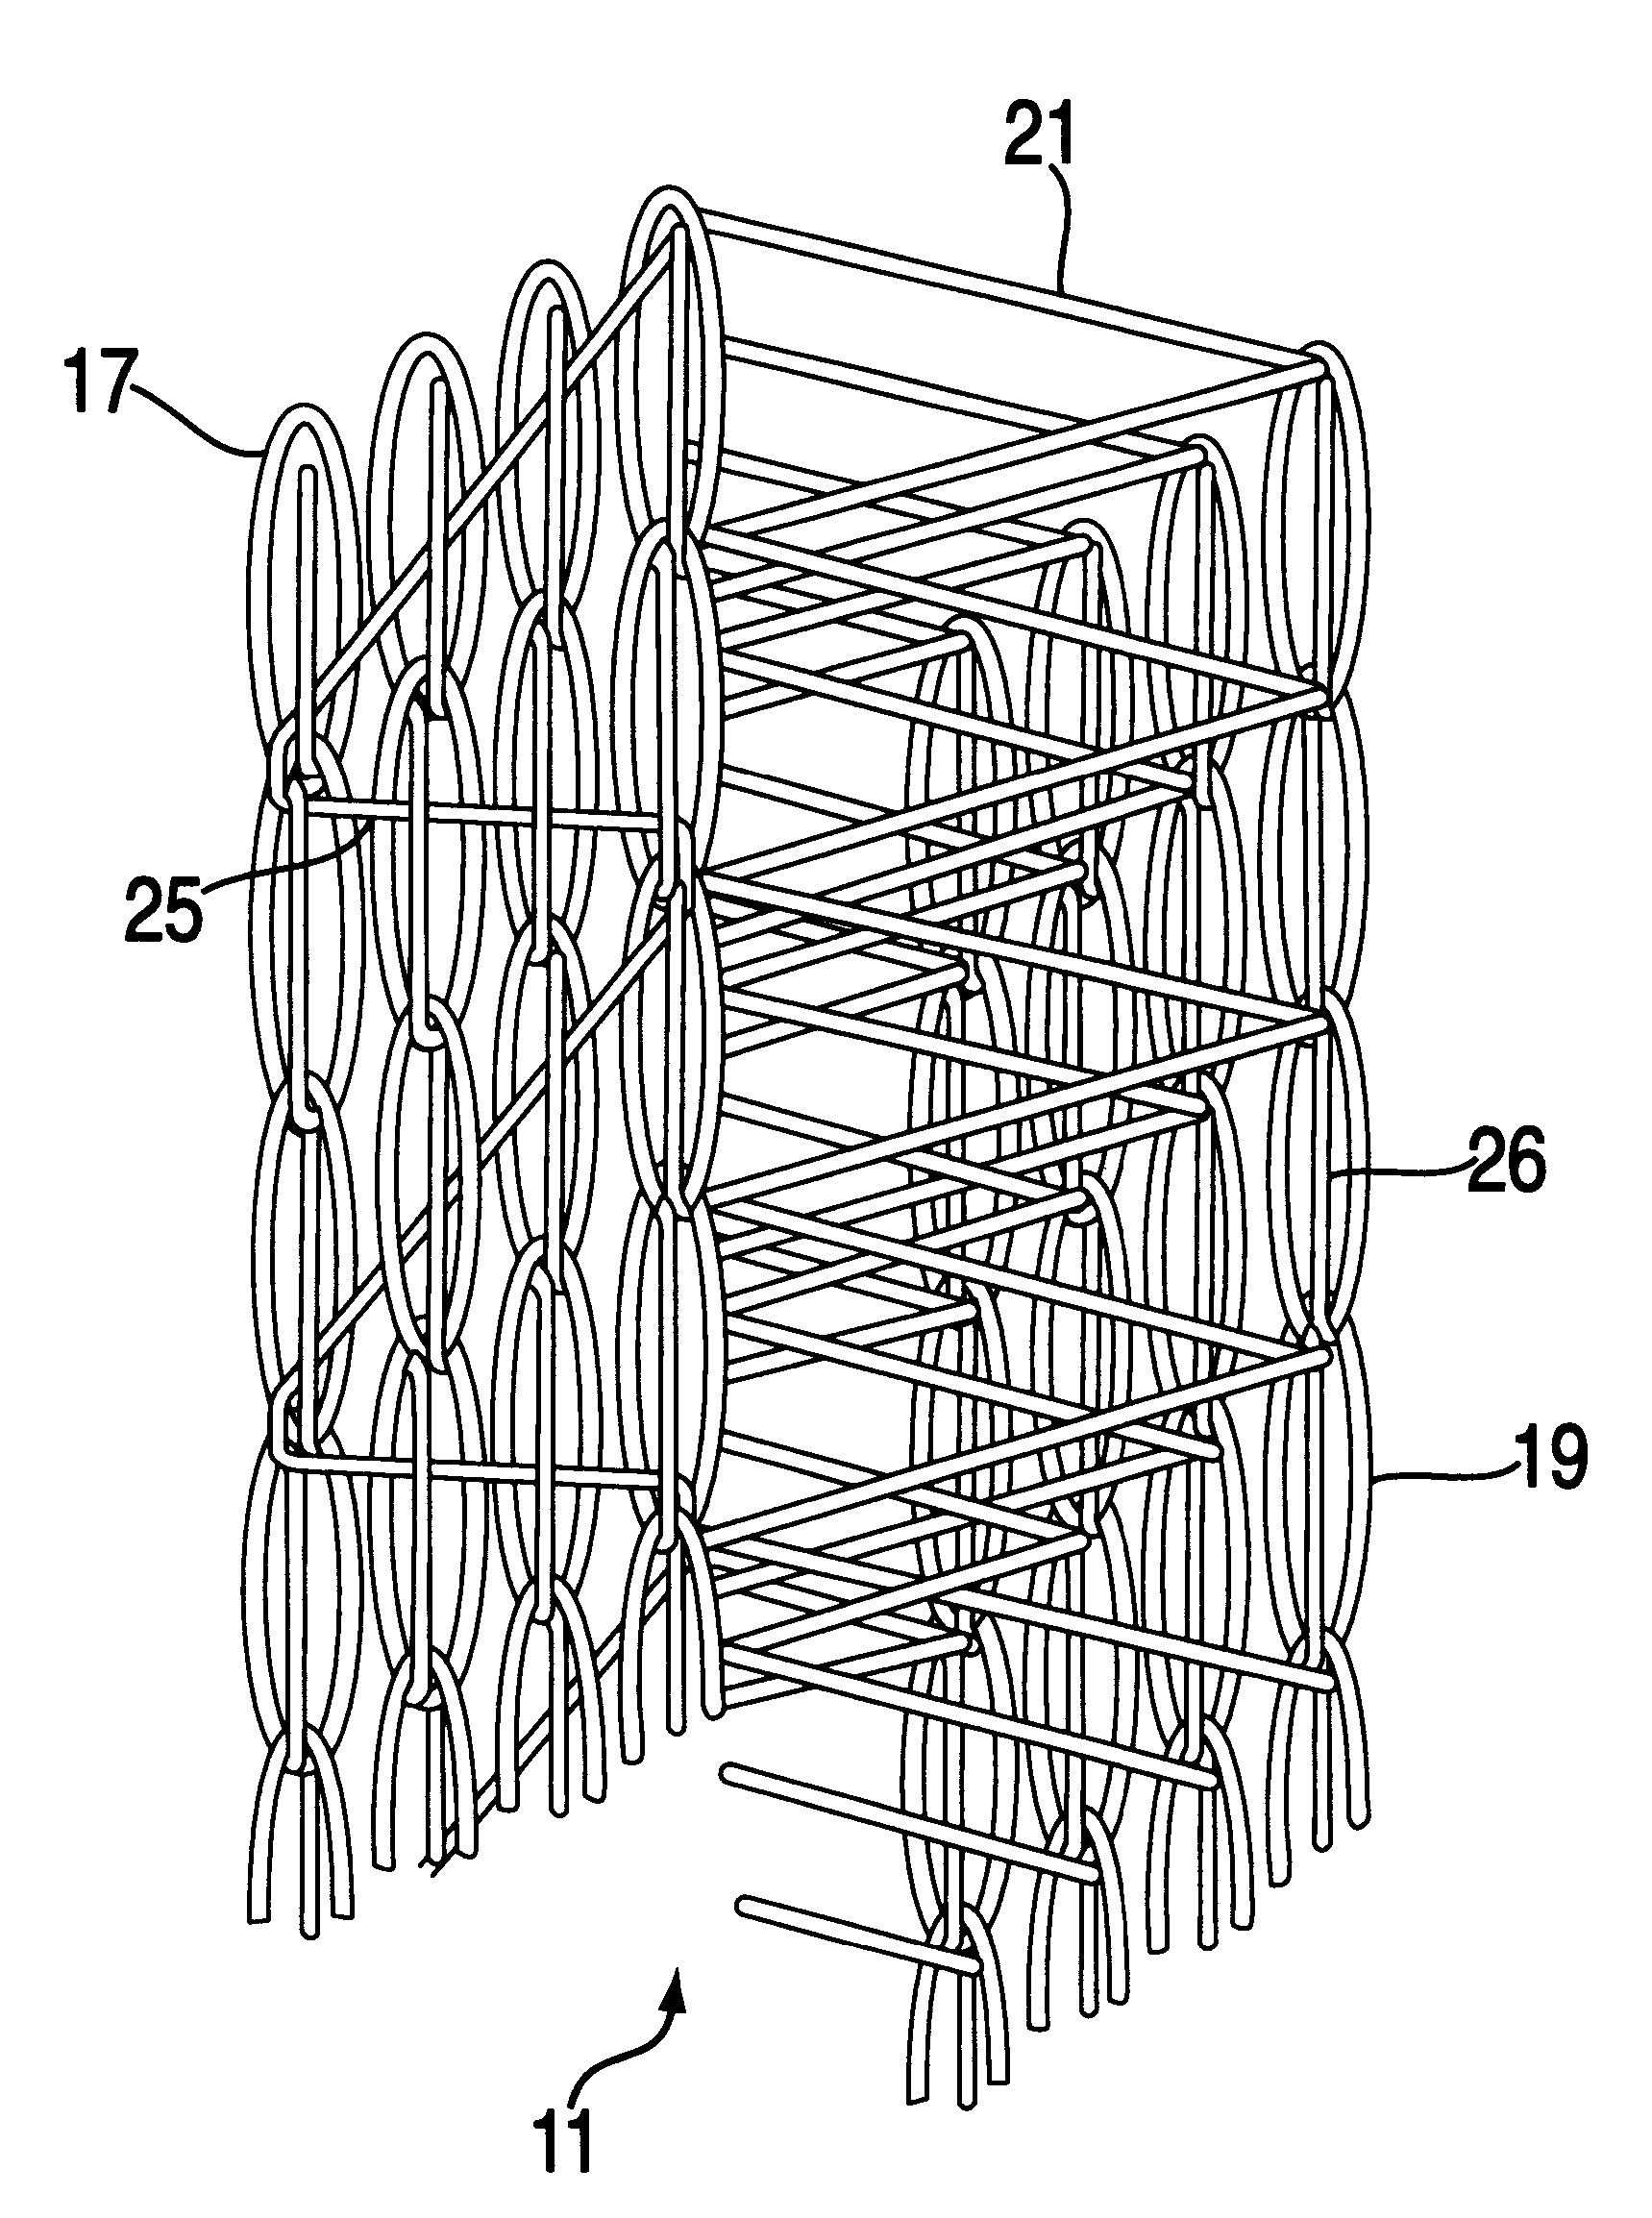 Warp Knitting Fabric Process : Patent us double face warp knit fabric with two